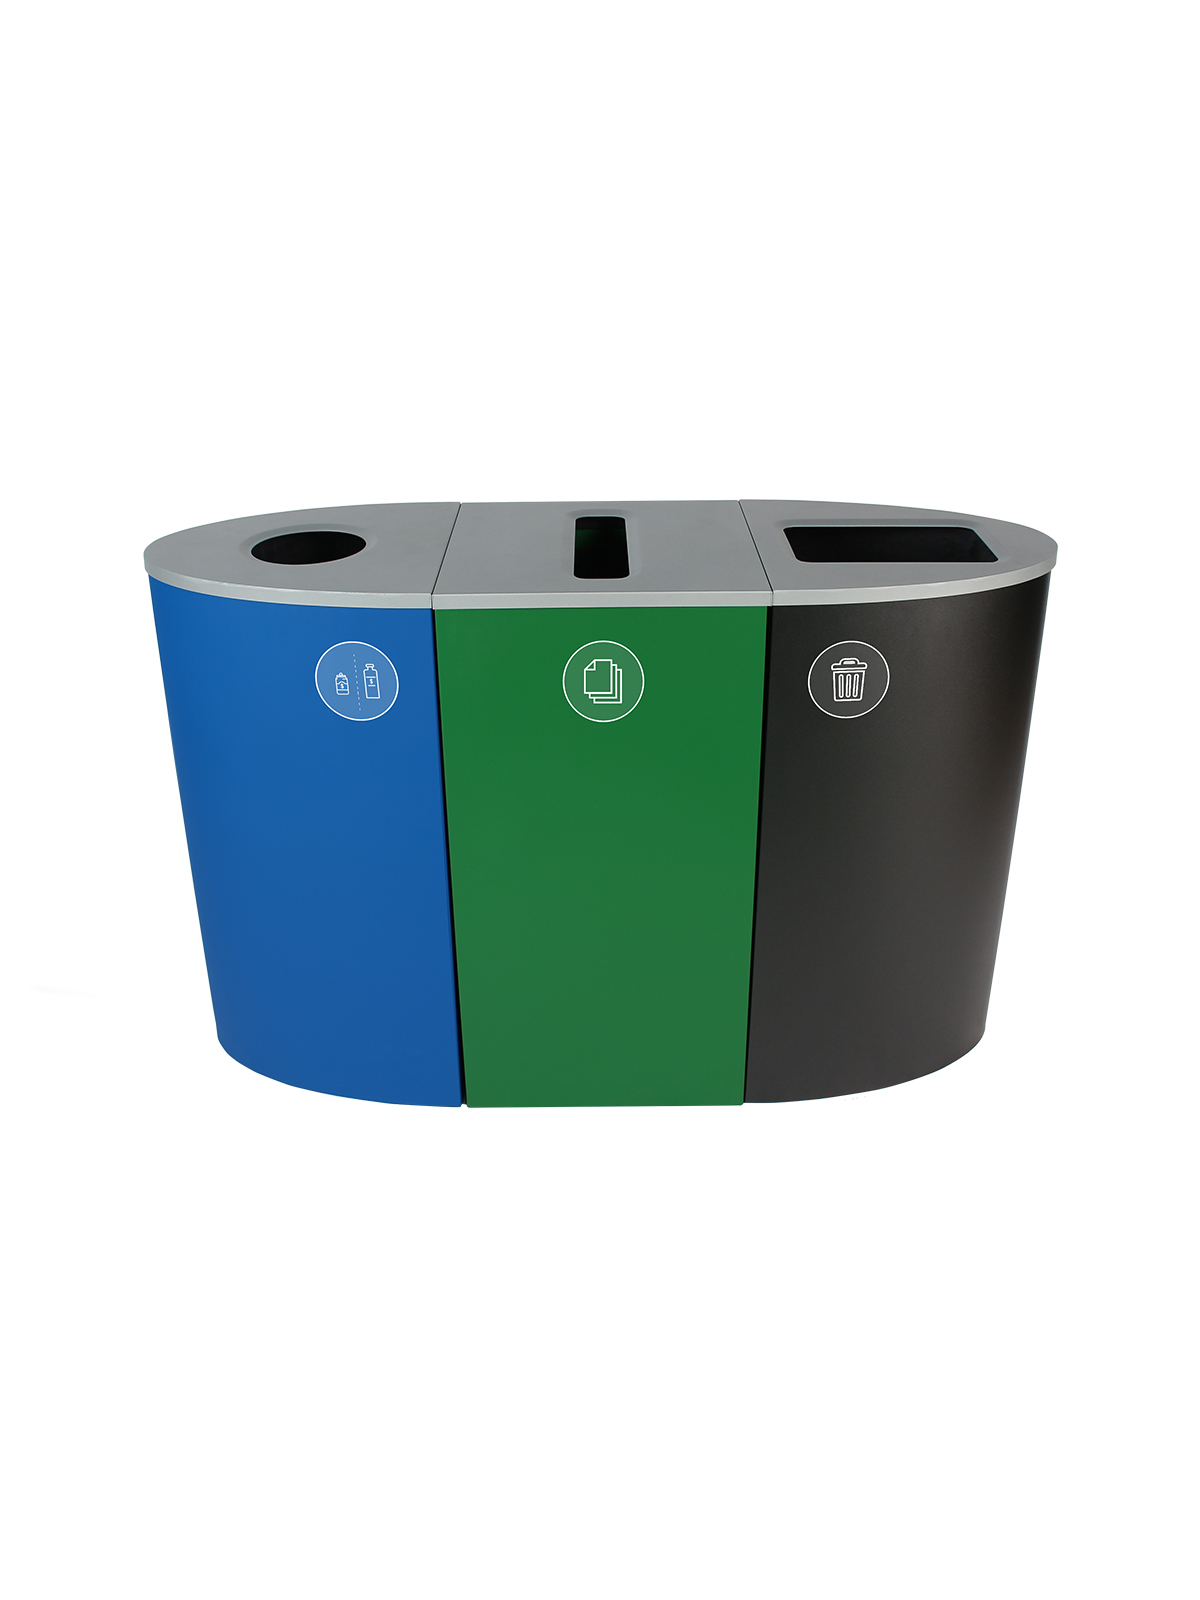 SPECTRUM - Triple - Newfoundland & Labrador Compliant - Refundables-Paper-Waste - Circle-Slot-Full - Blue-Green-Black